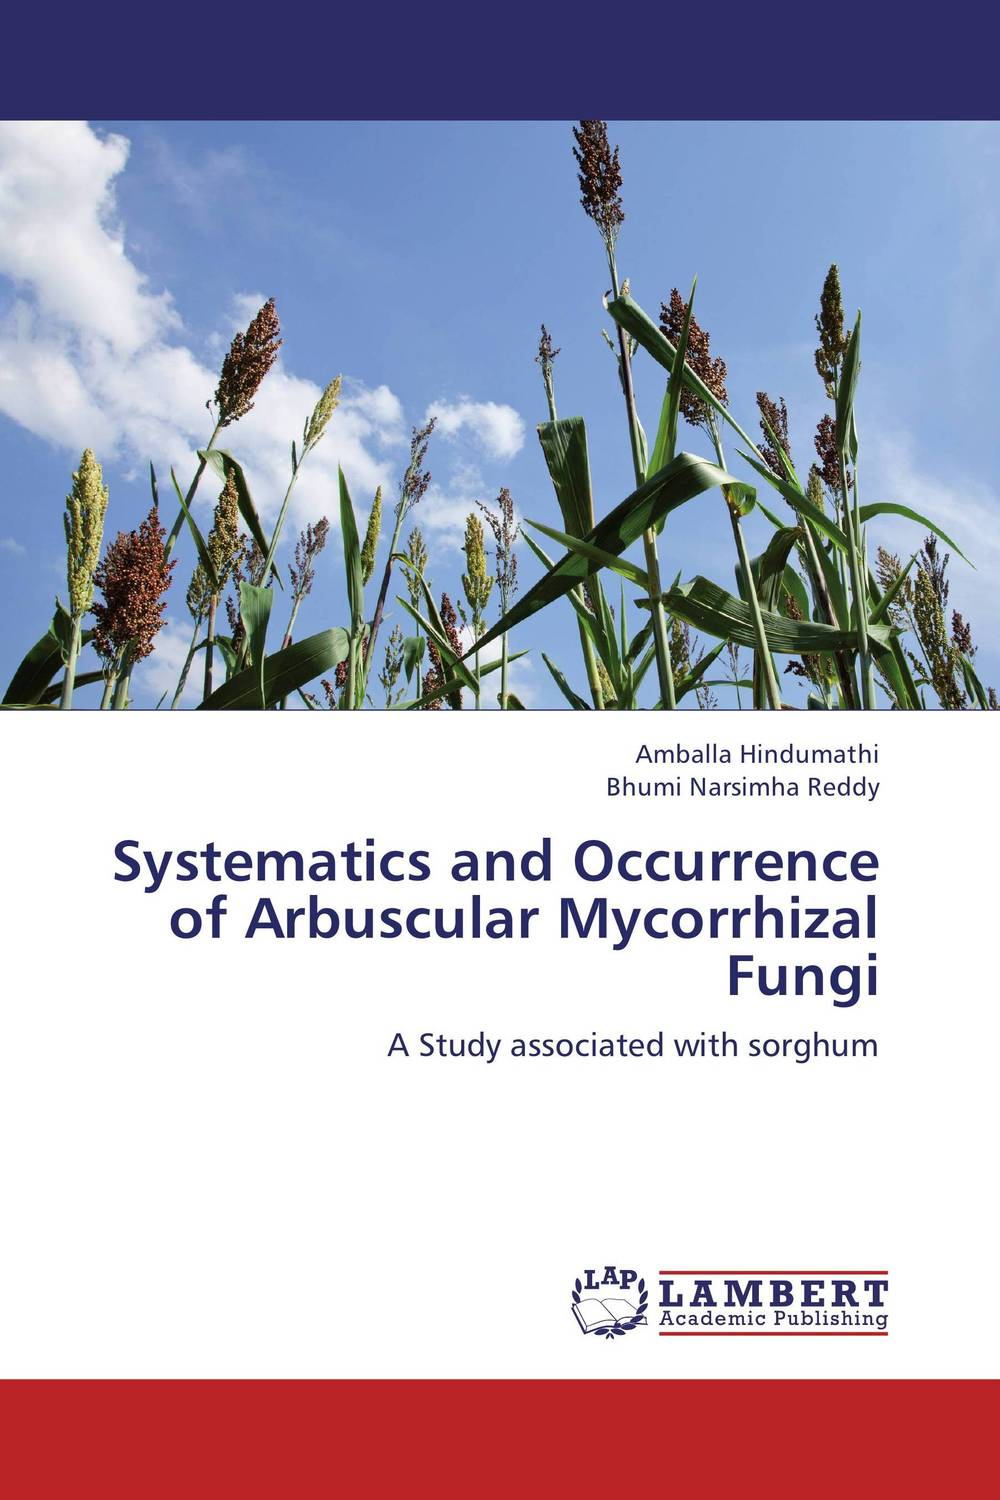 Systematics and Occurrence of Arbuscular Mycorrhizal Fungi michael j carlile the fungi